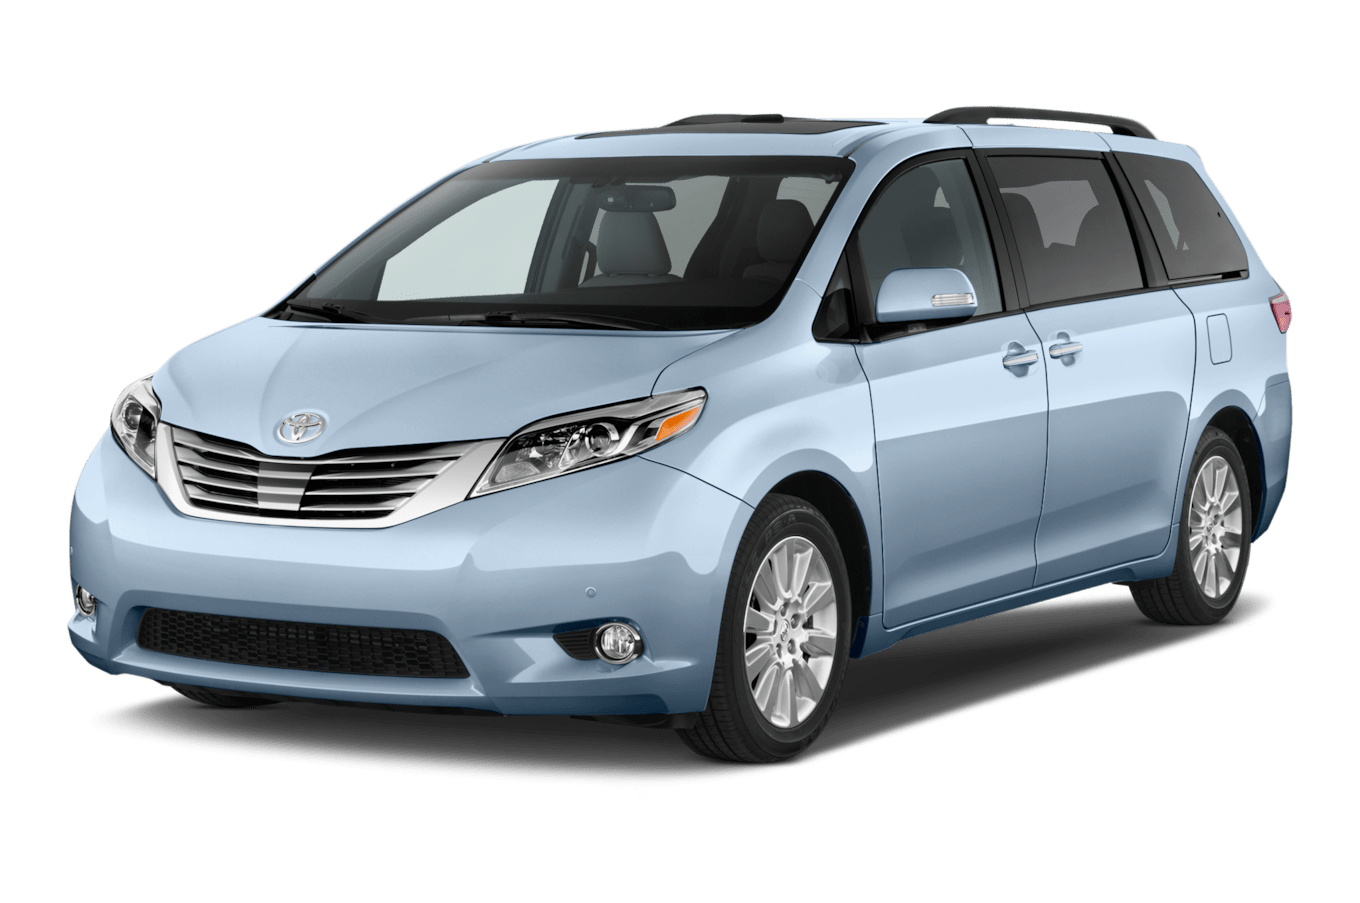 medium resolution of 2015 toyota sienna reviews research sienna prices u0026 specs2015 toyota sienna trailer wiring diagram